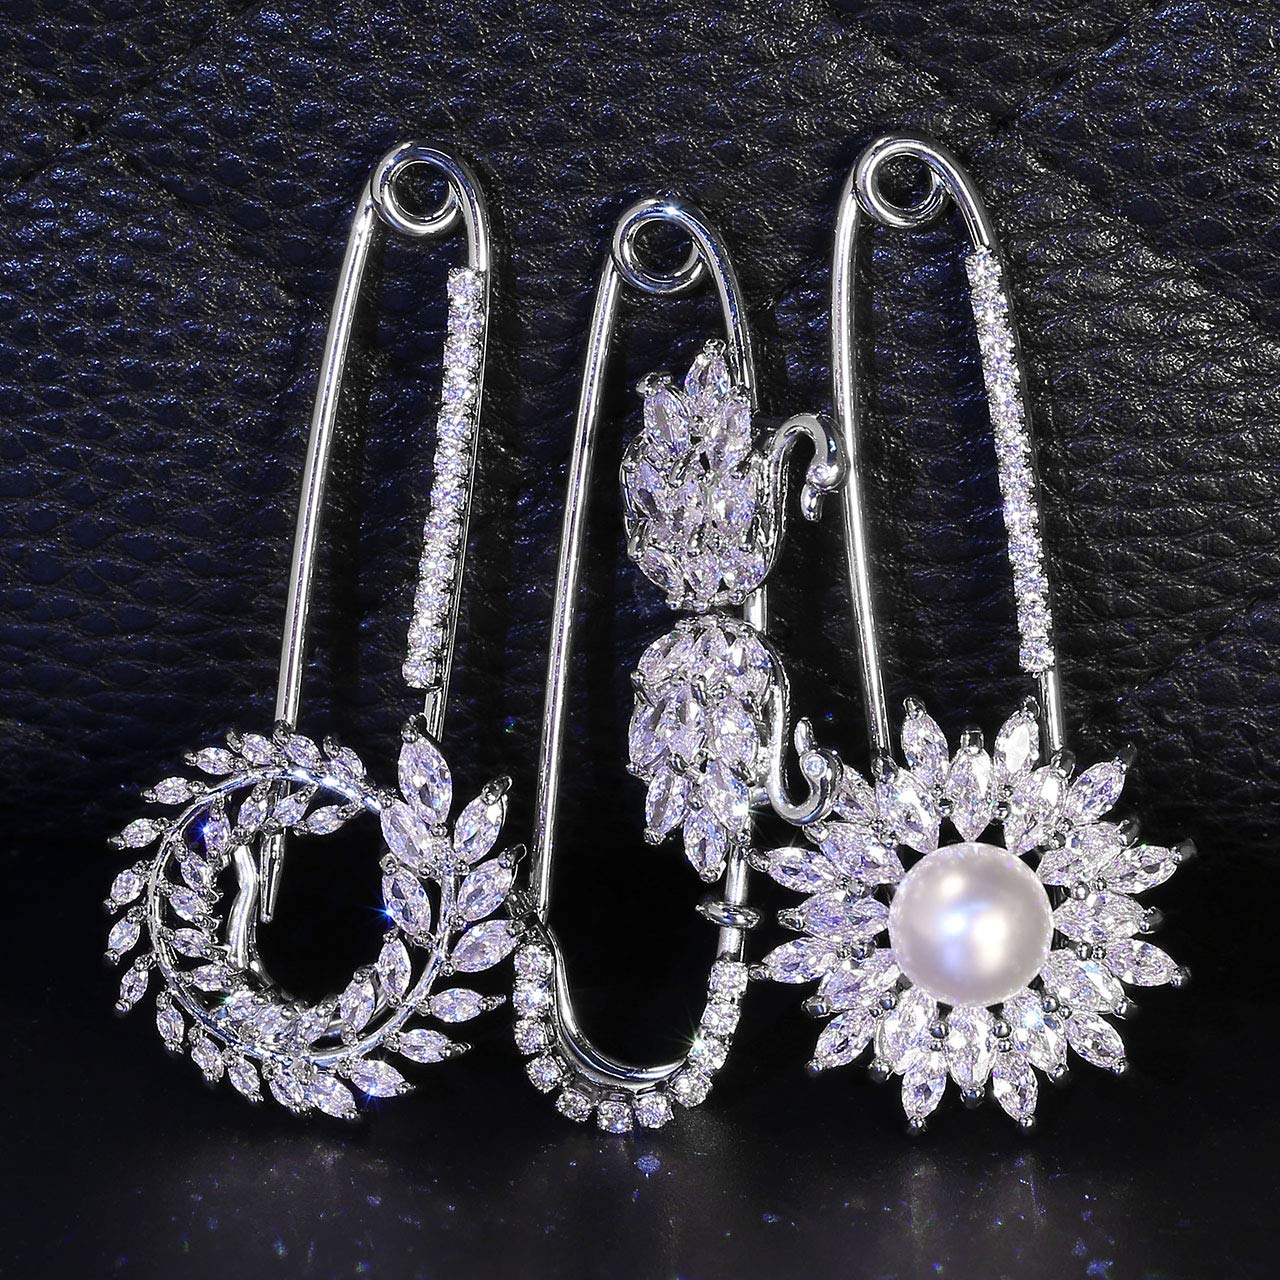 Jovivi 3pcs Clear Cubic Zirconia Crystal Floral Feather Safety Pin Brooches Suit Sweater Scarves Scarf Brooch Charm by Jovivi (Image #2)